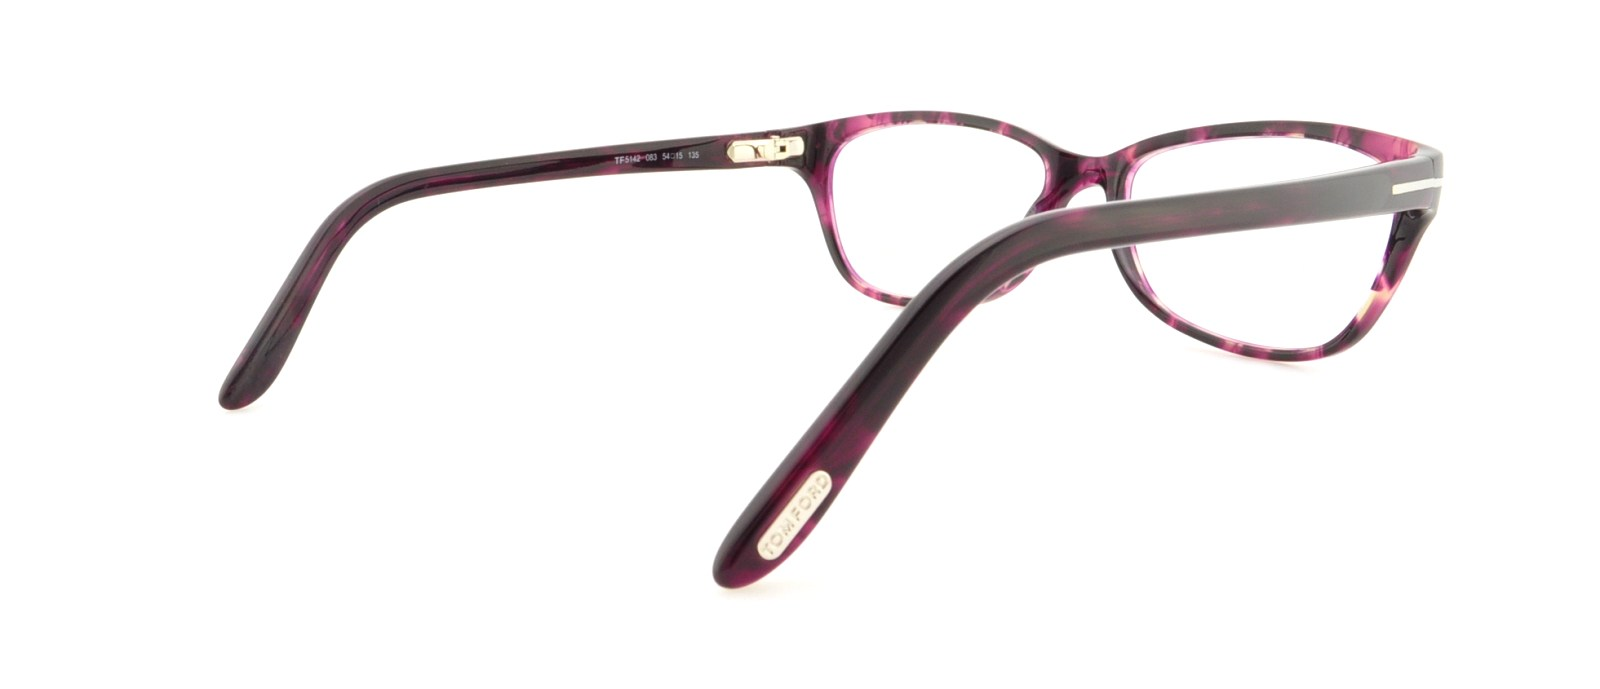 37c5a08d29 TOM FORD Eyeglasses FT5142 083 Violet 54MM 664689515189